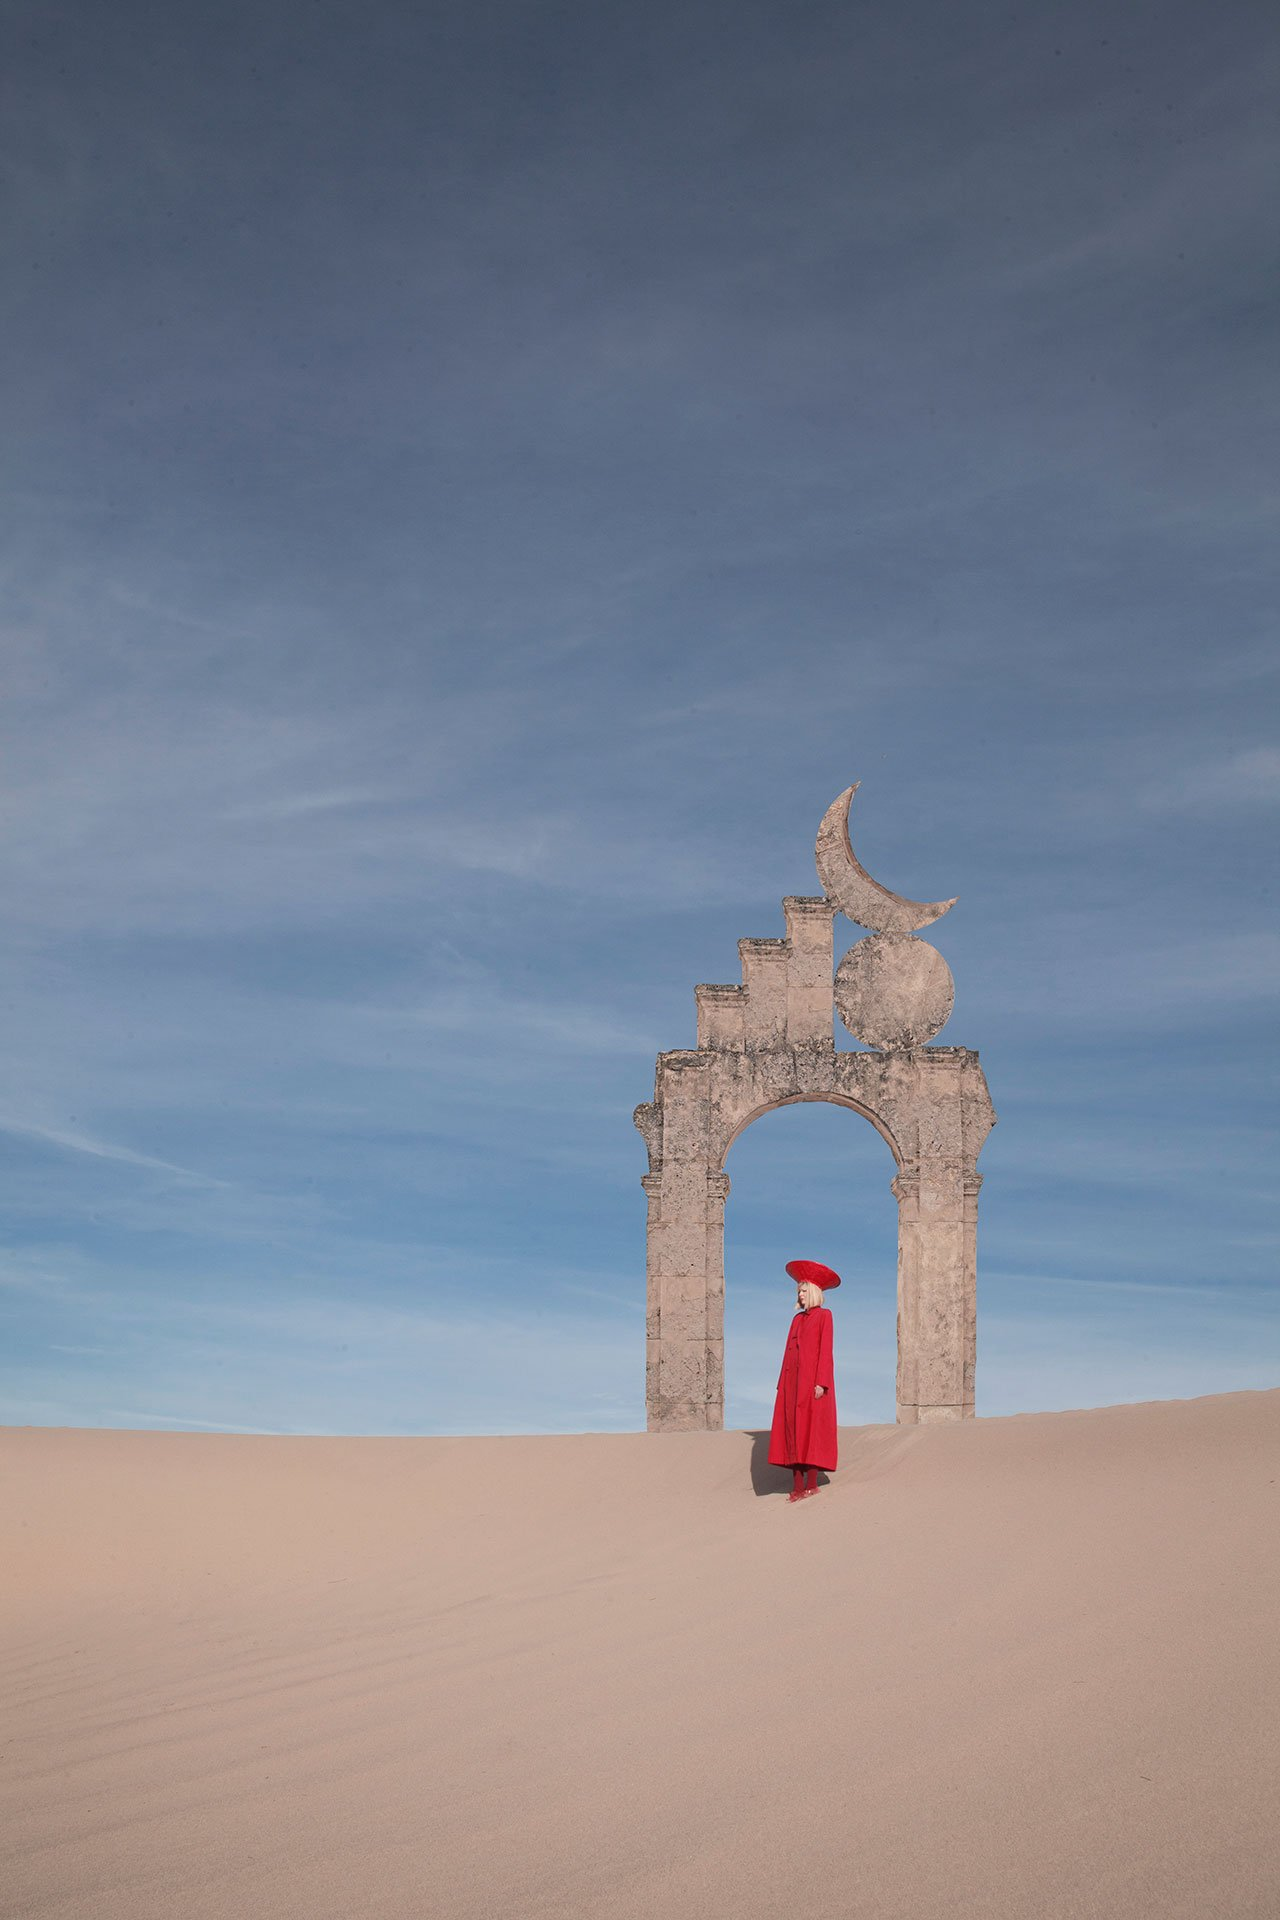 'Red dune alter me'. Photo © Petecia Le Fawnhawk.